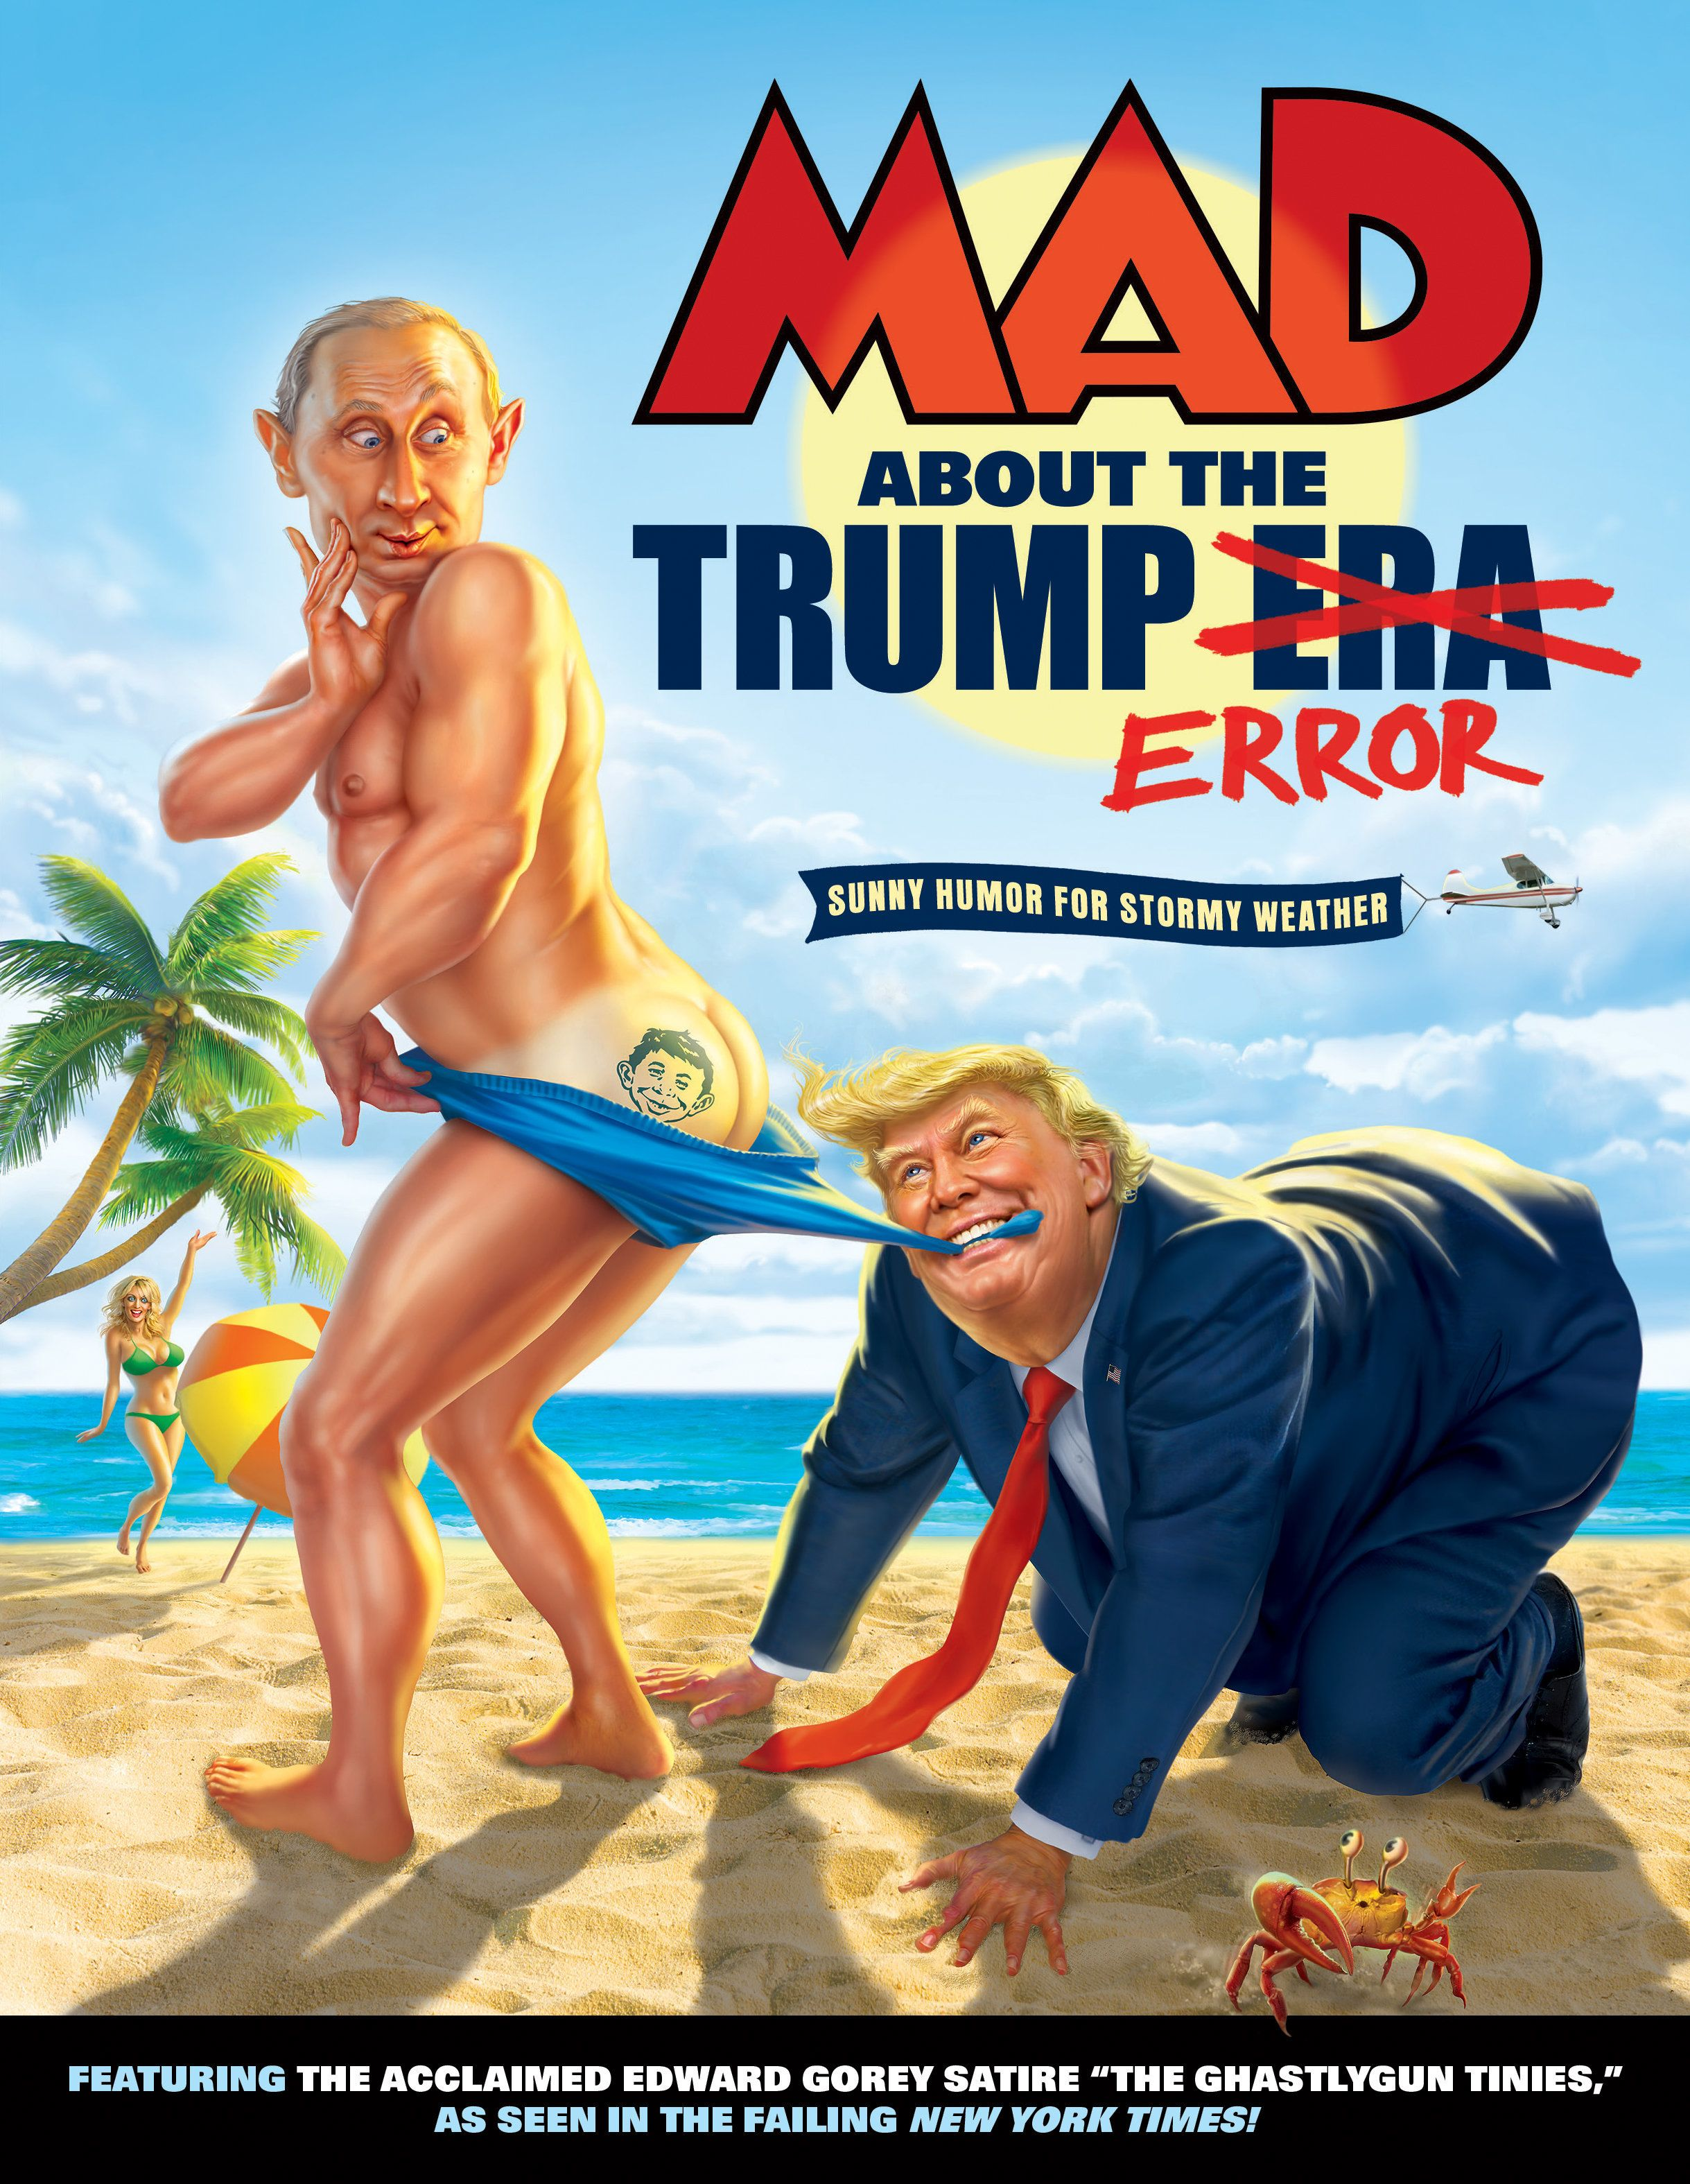 The cover of MAD magazine's latest book on Donald Trump.